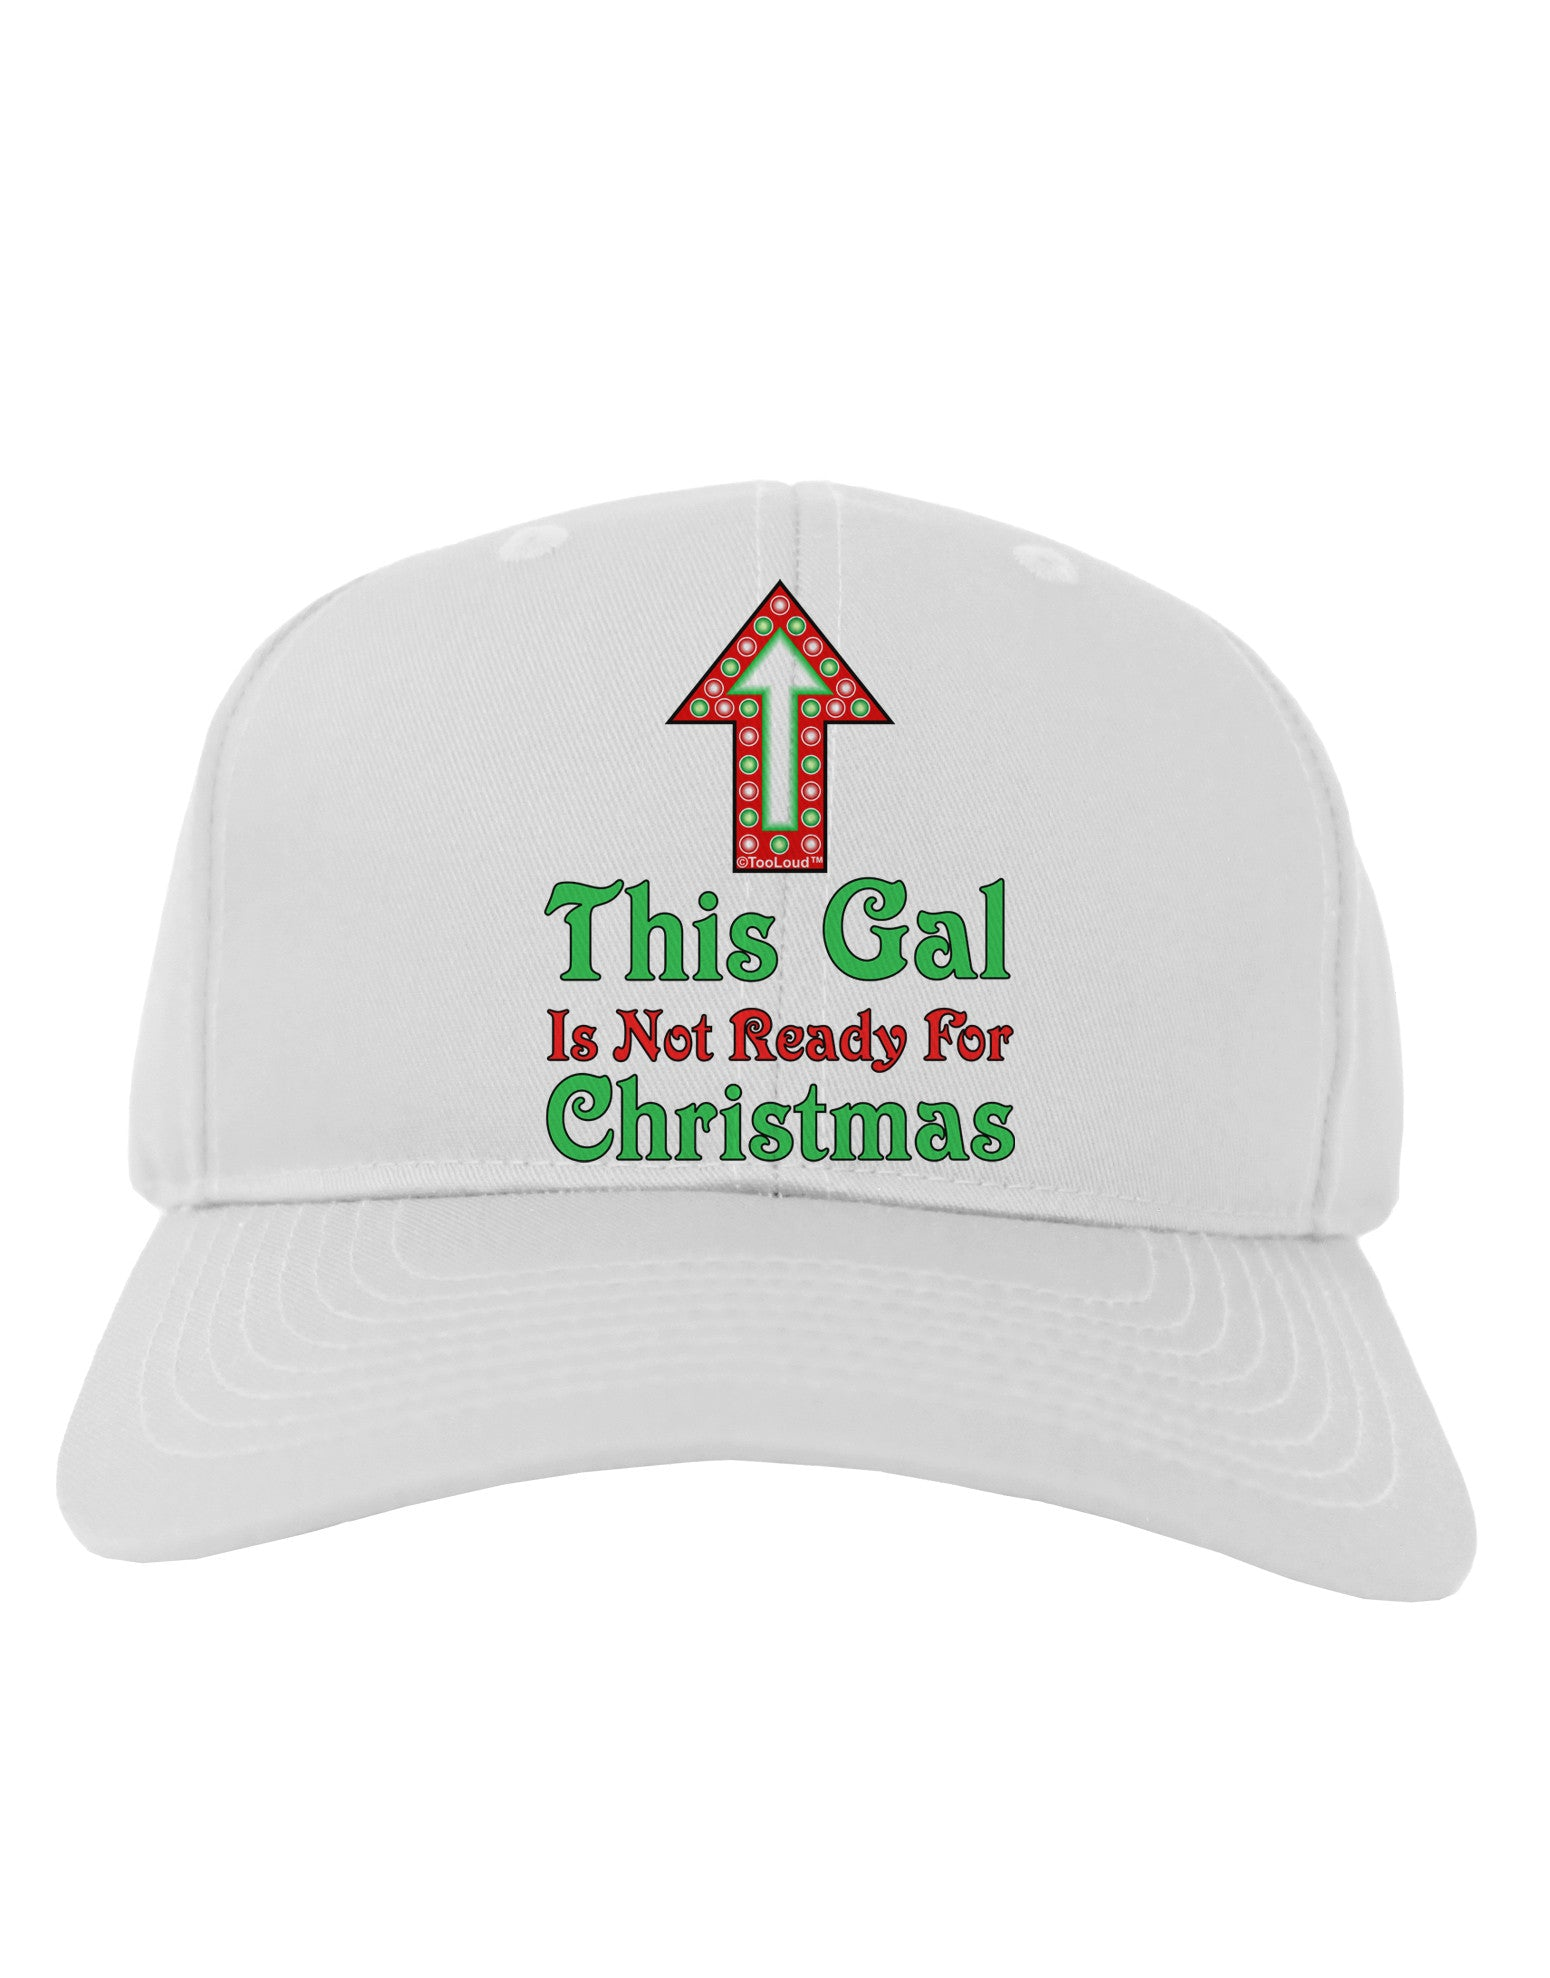 This Gal Is Not Ready For Christmas Adult Baseball Cap Hat